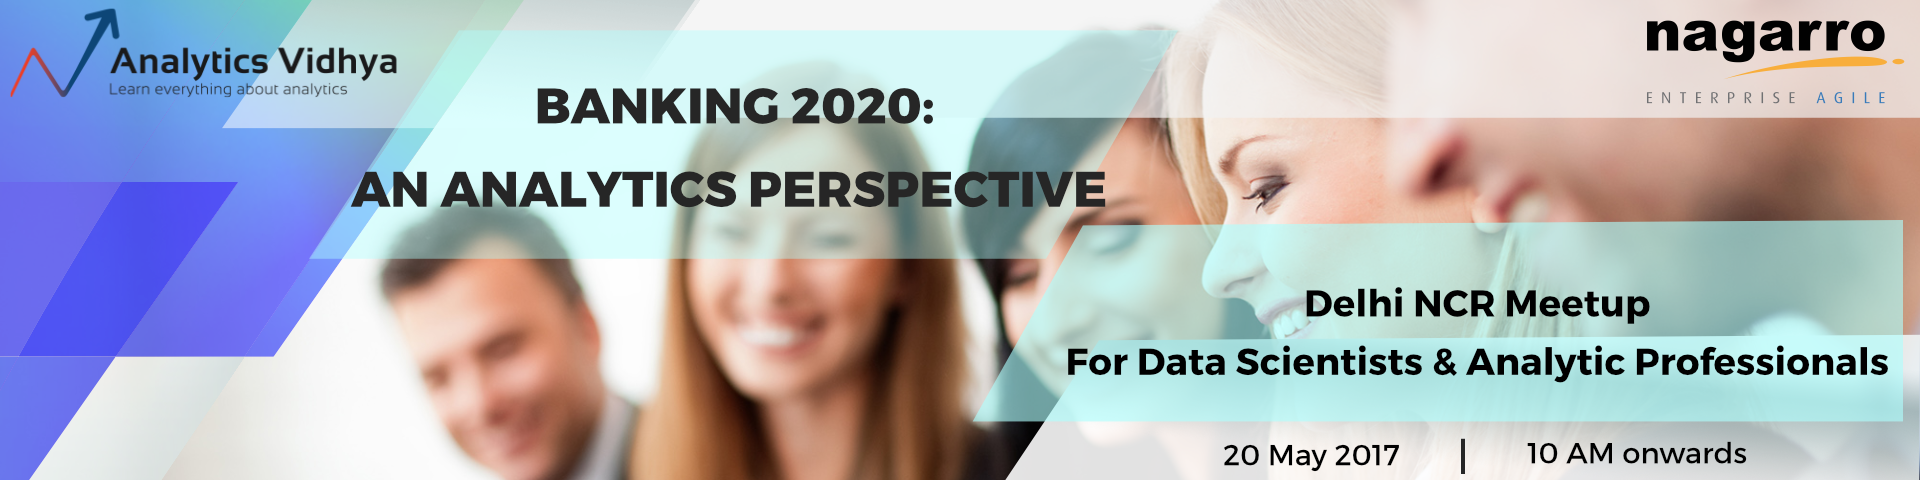 Cover image for Delhi NCR Meetup: Banking 2020 - An Analytics Perspective (Nagarro)